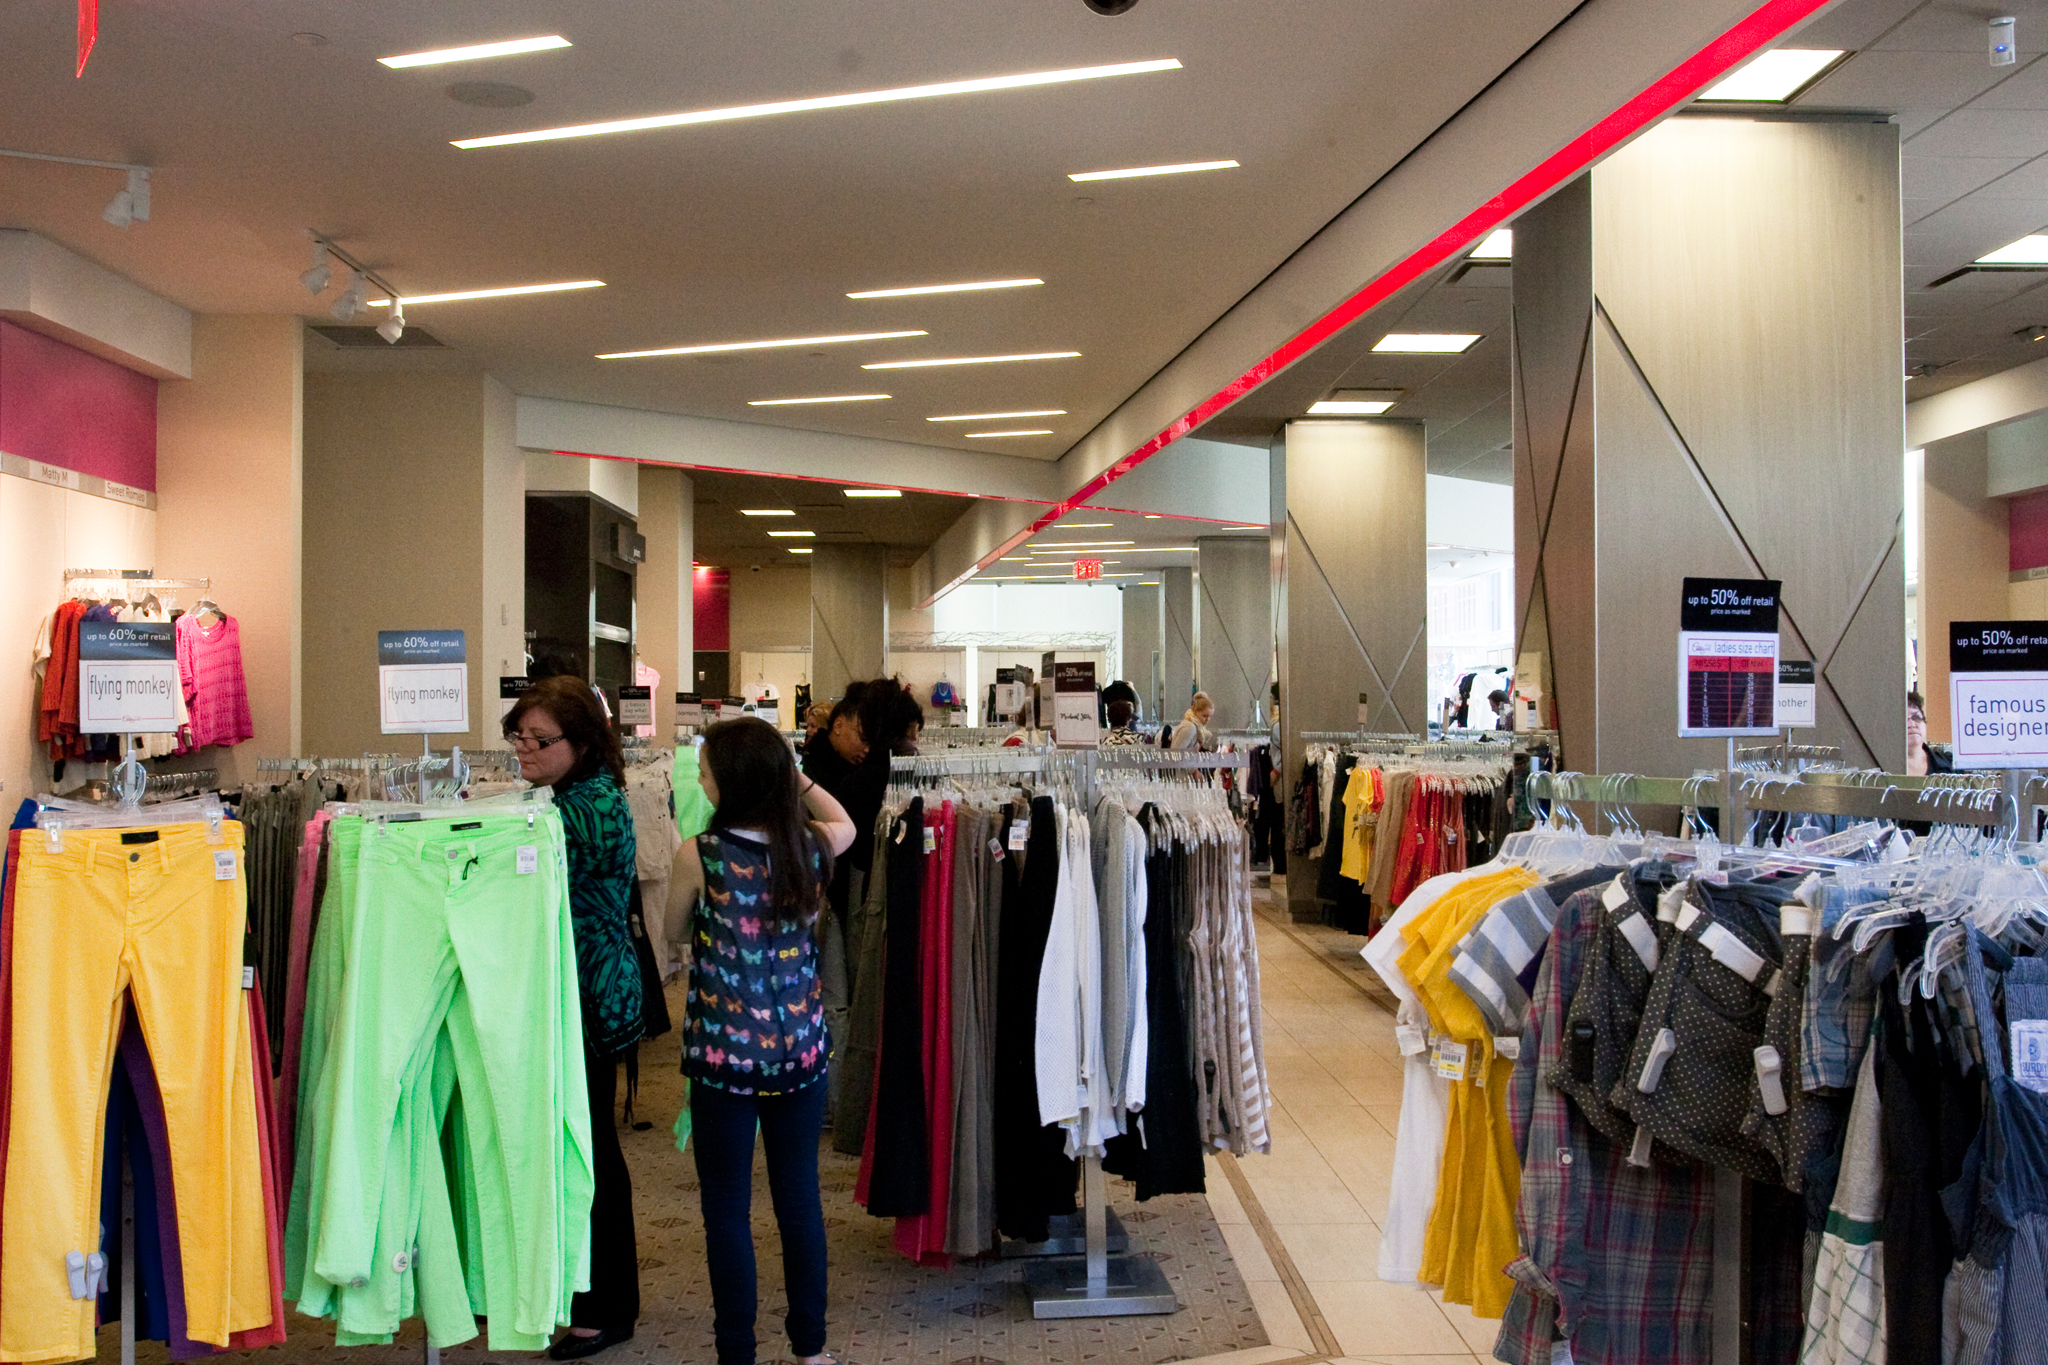 Century 21 clothing stores